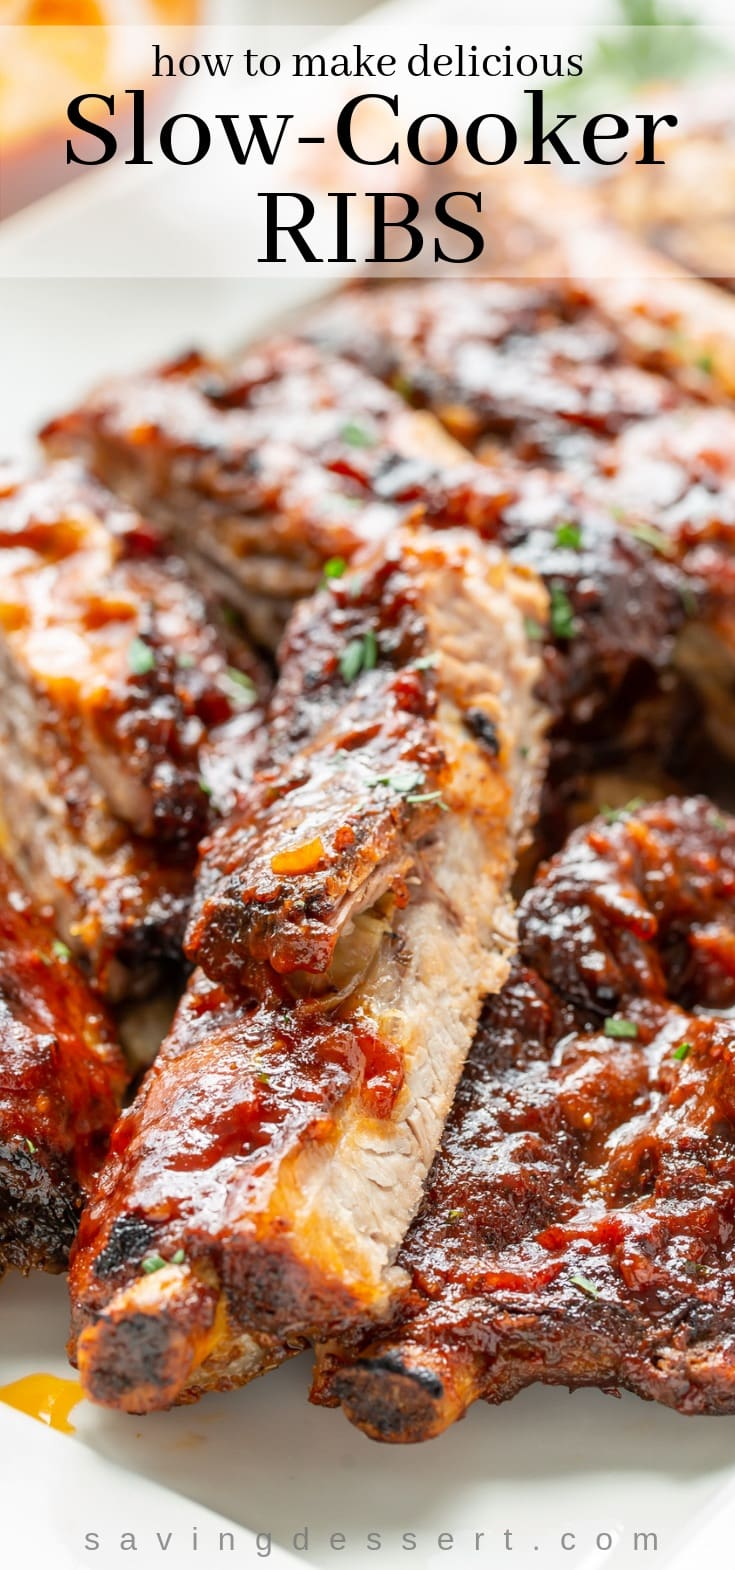 Slow-Cooker Ribs - juicy, tender and flavorful St. Louis-style pork spareribs slow-cooked then grilled or broiled for the perfect char. #slowcooker #slowcookerribs #BBQribs #ribs #barbecuedribs #slowcookerribsrecipe #slowcookerporkribs #stlouistyleribs #bbq